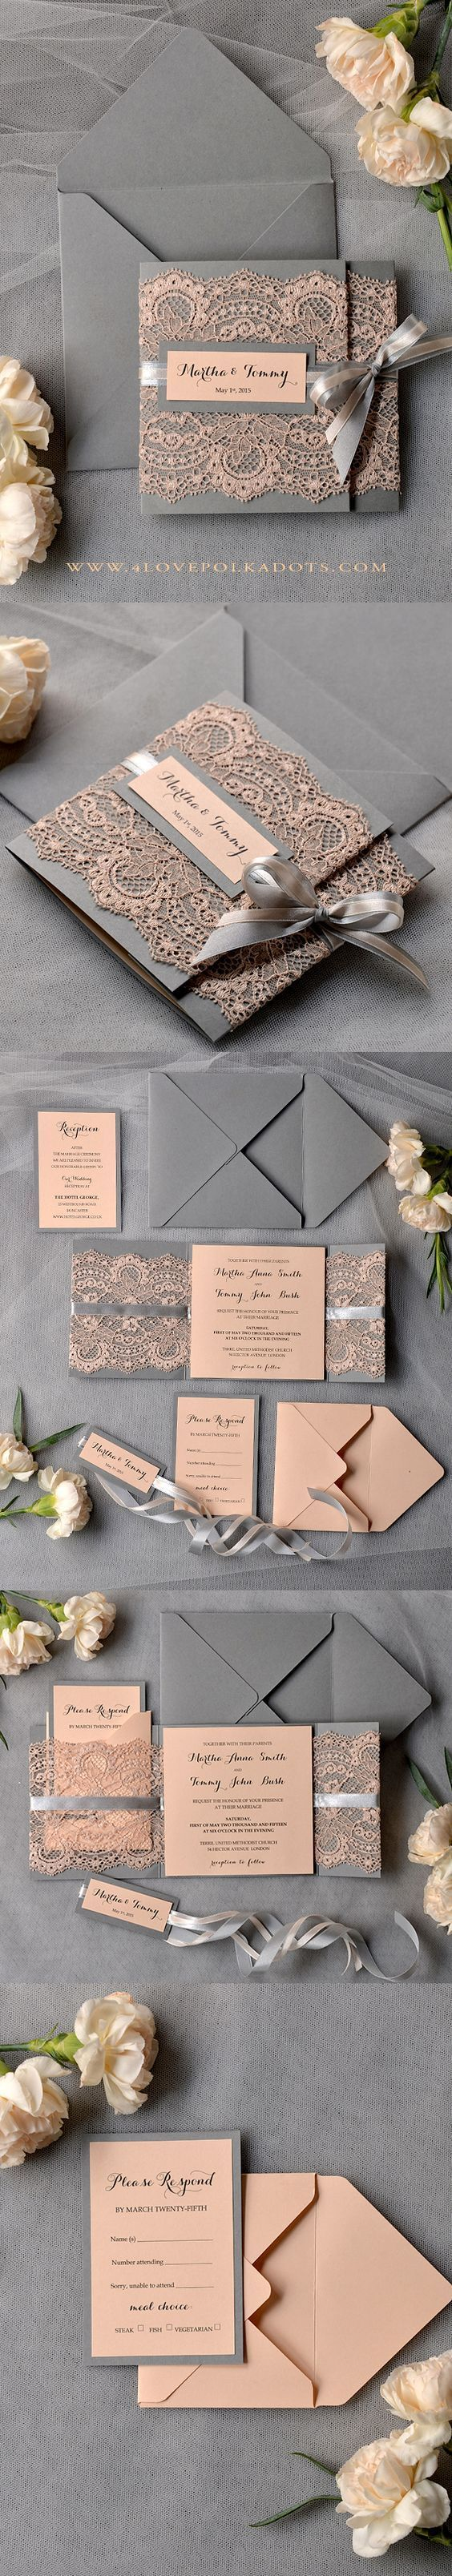 Peach & Grey Lace Wedding Invitations #perfectwedding #weddingideas #lace…